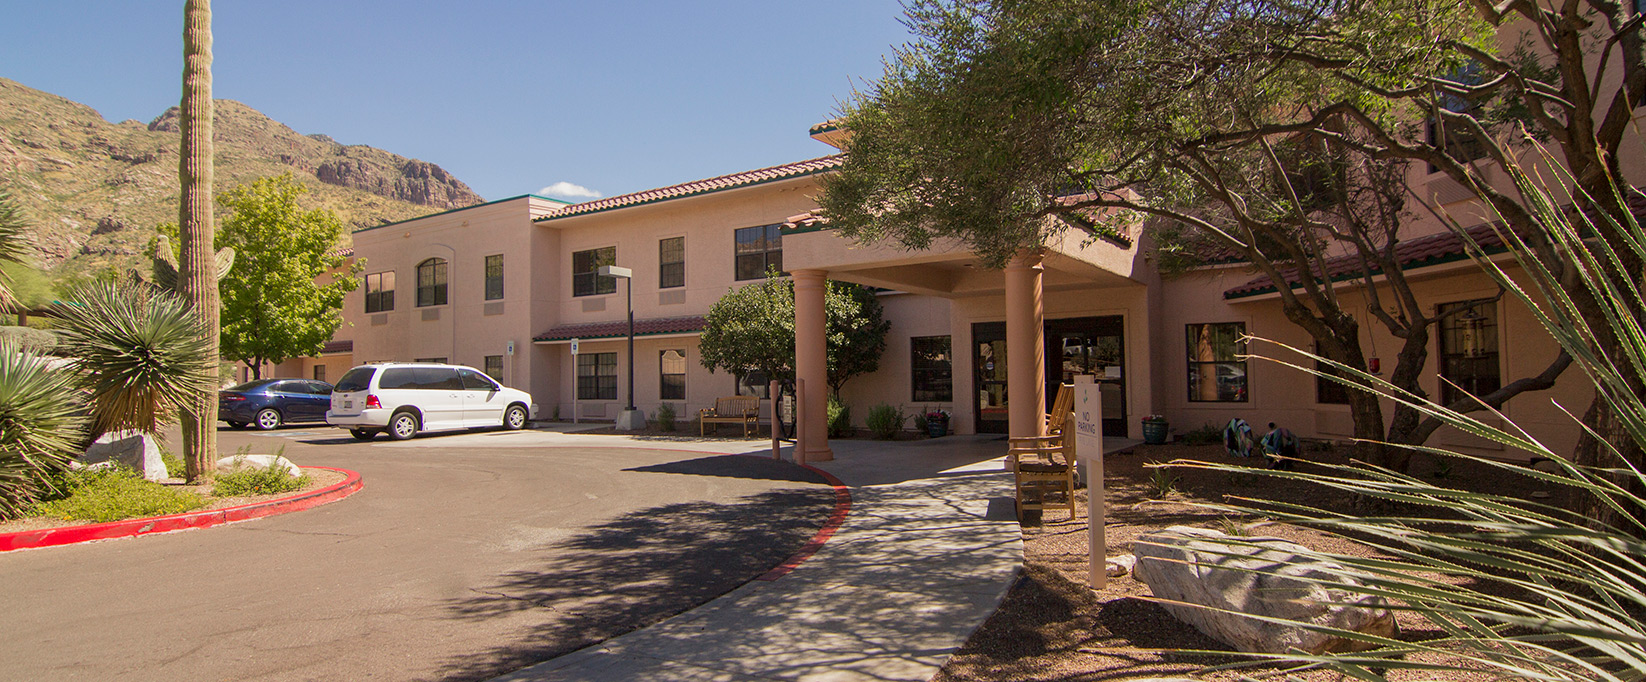 Senior Living in Tucson, Arizona | Brookdale Santa Catalina